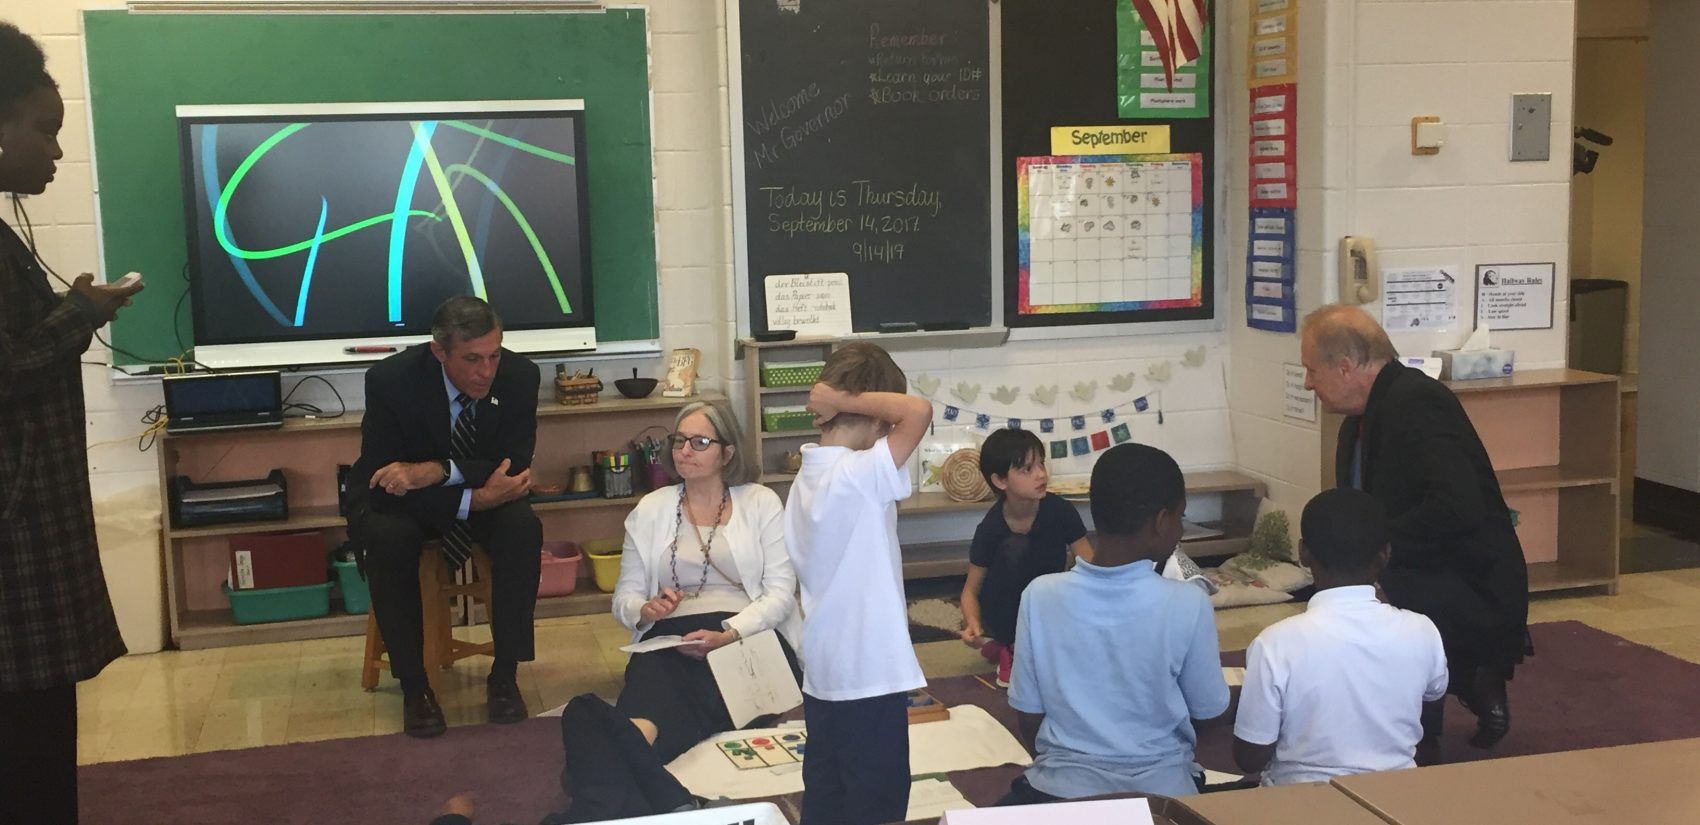 Gov. John Carney (seated) recently visited Bancroft Elementary, which has barely one-third of its seats filled. Carney said Christina School District leaders must make